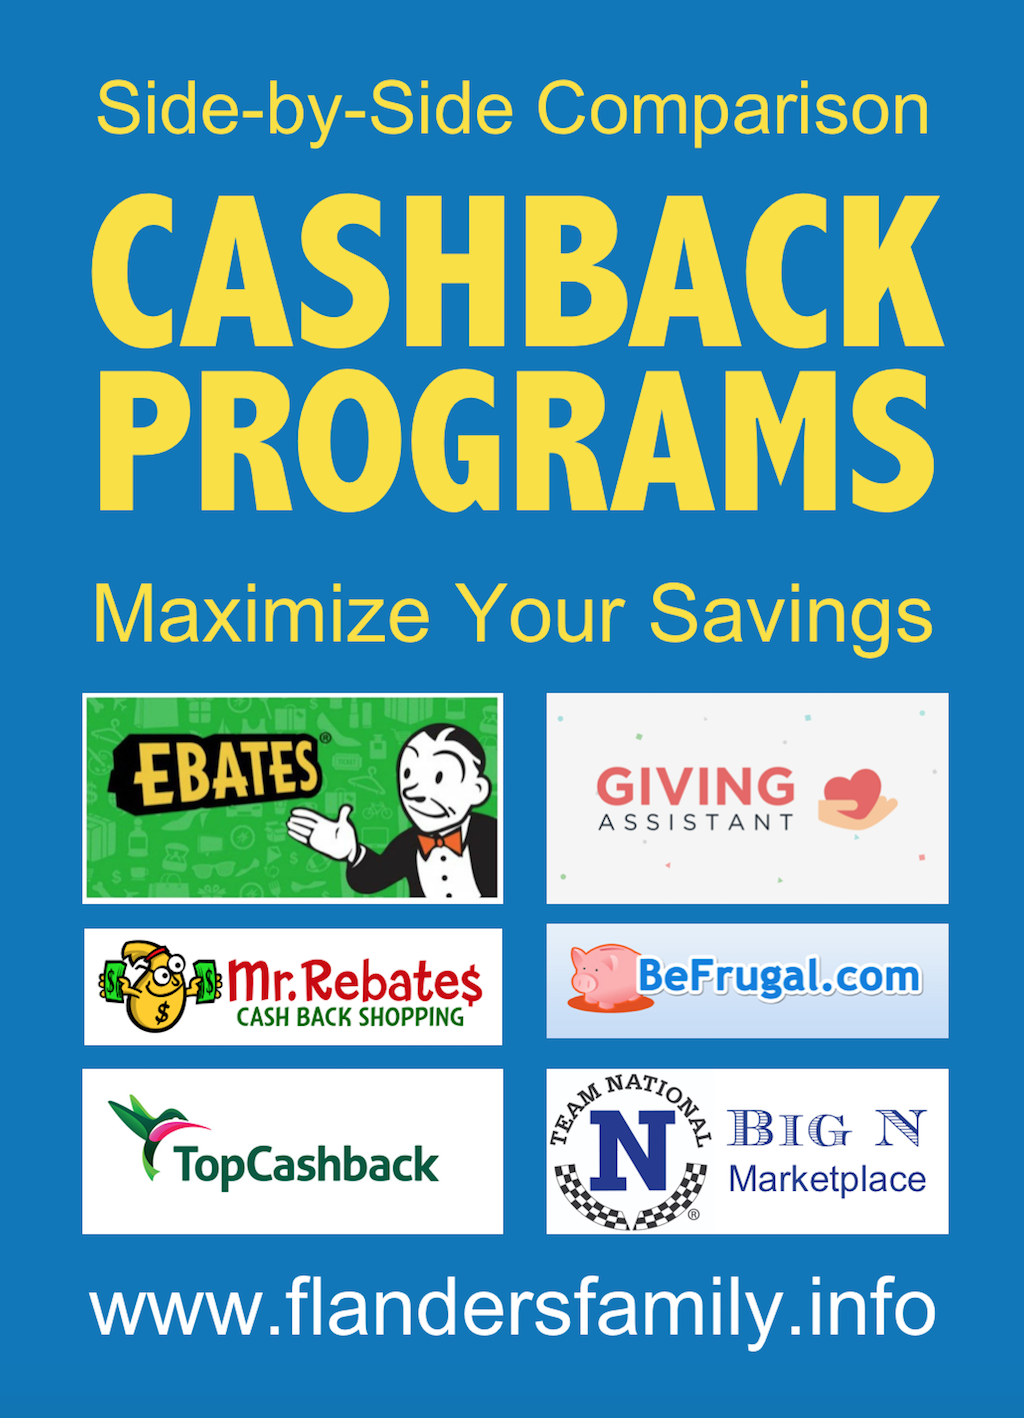 Cashback Program Comparison